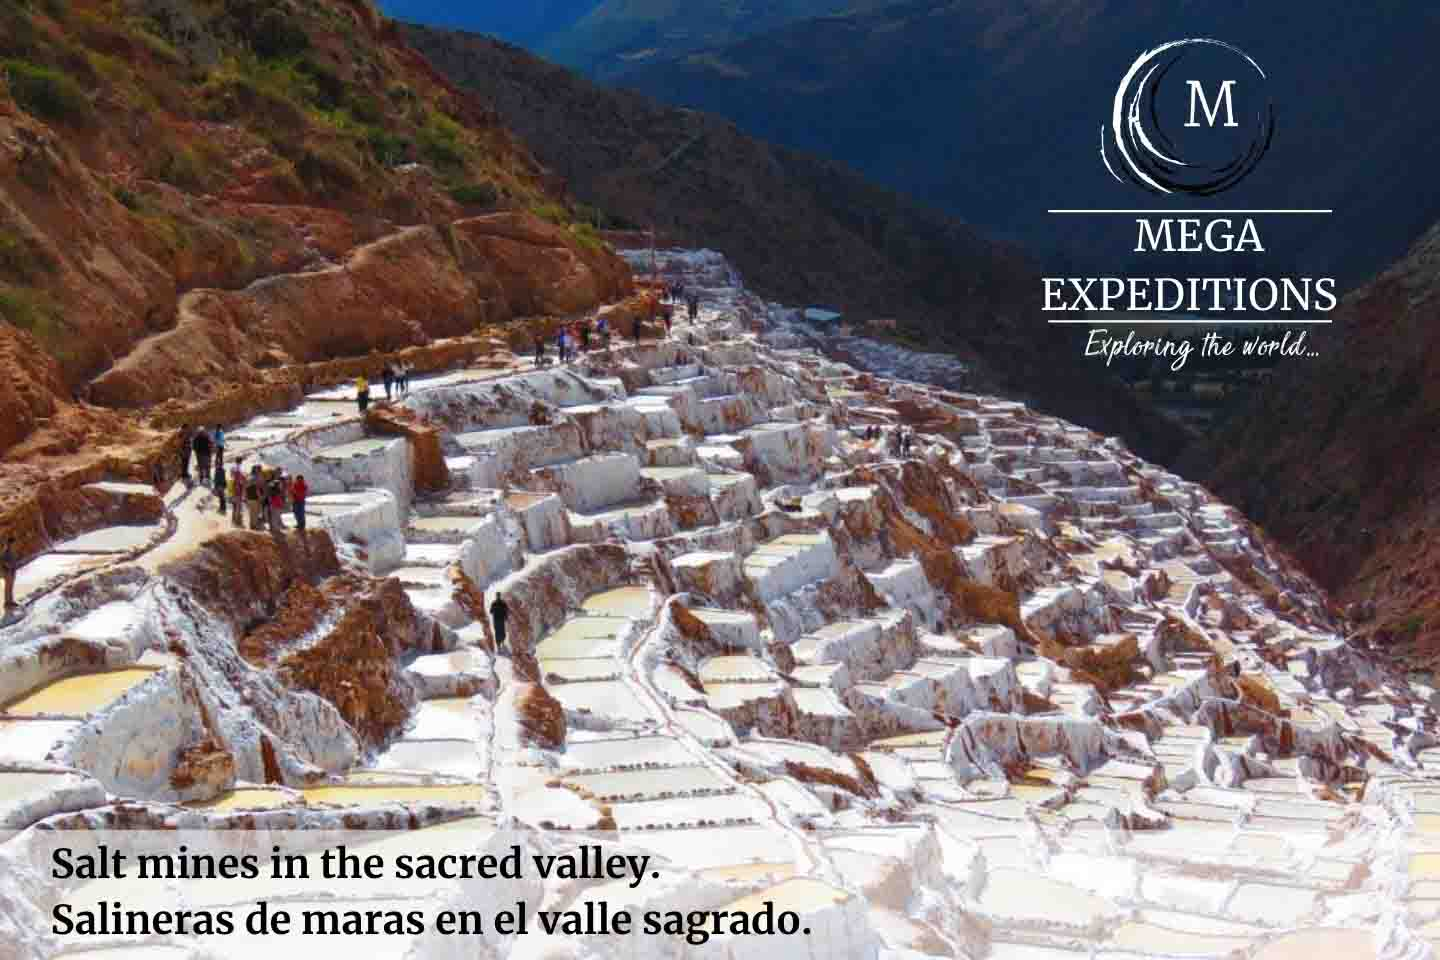 Salt mines in the sacred valley of the Inkas